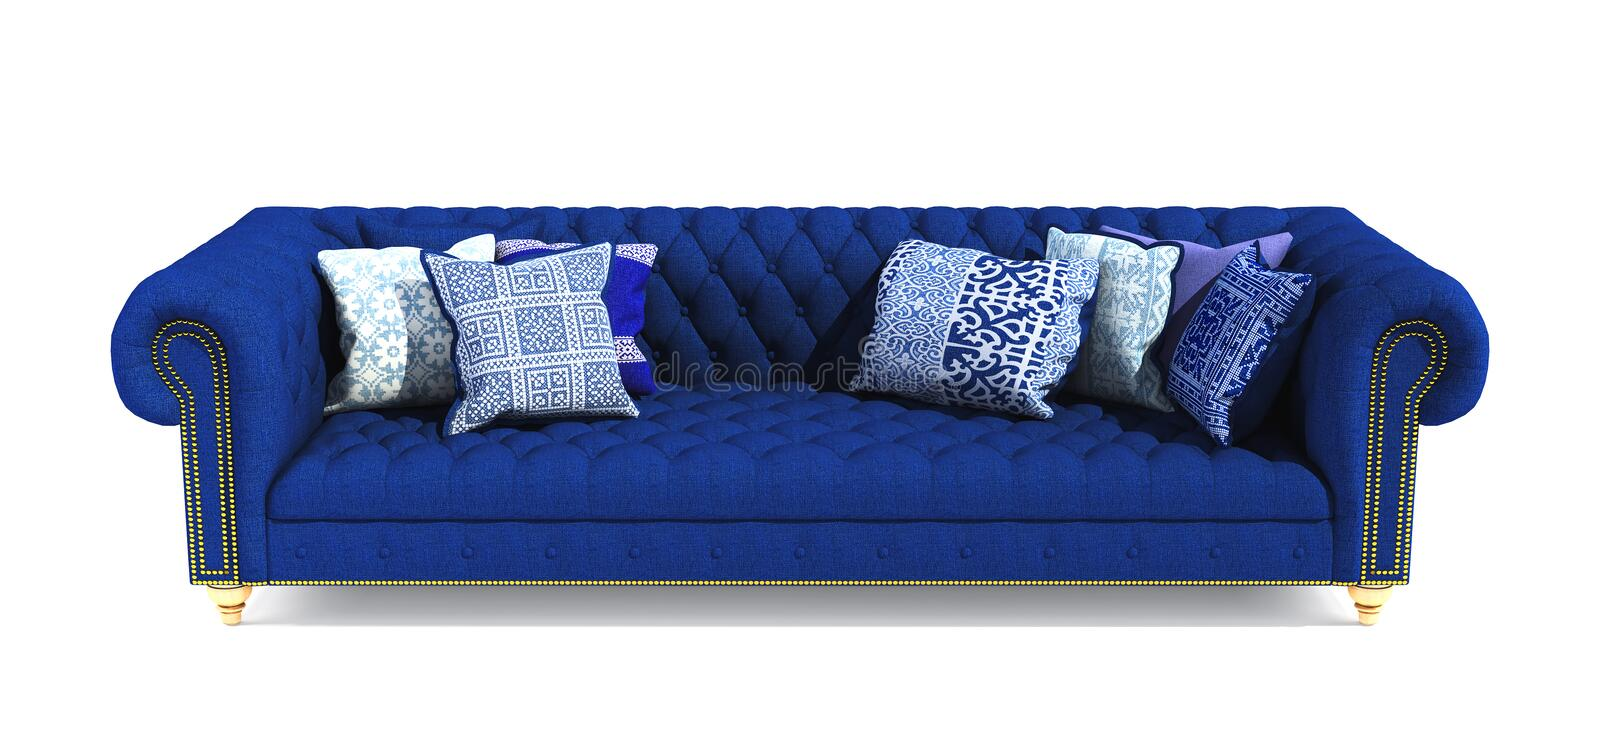 Modern classic blue fabric sofa with pillows in different ornament pattern on isolated white background. Stylish sofa with royalty free stock photography